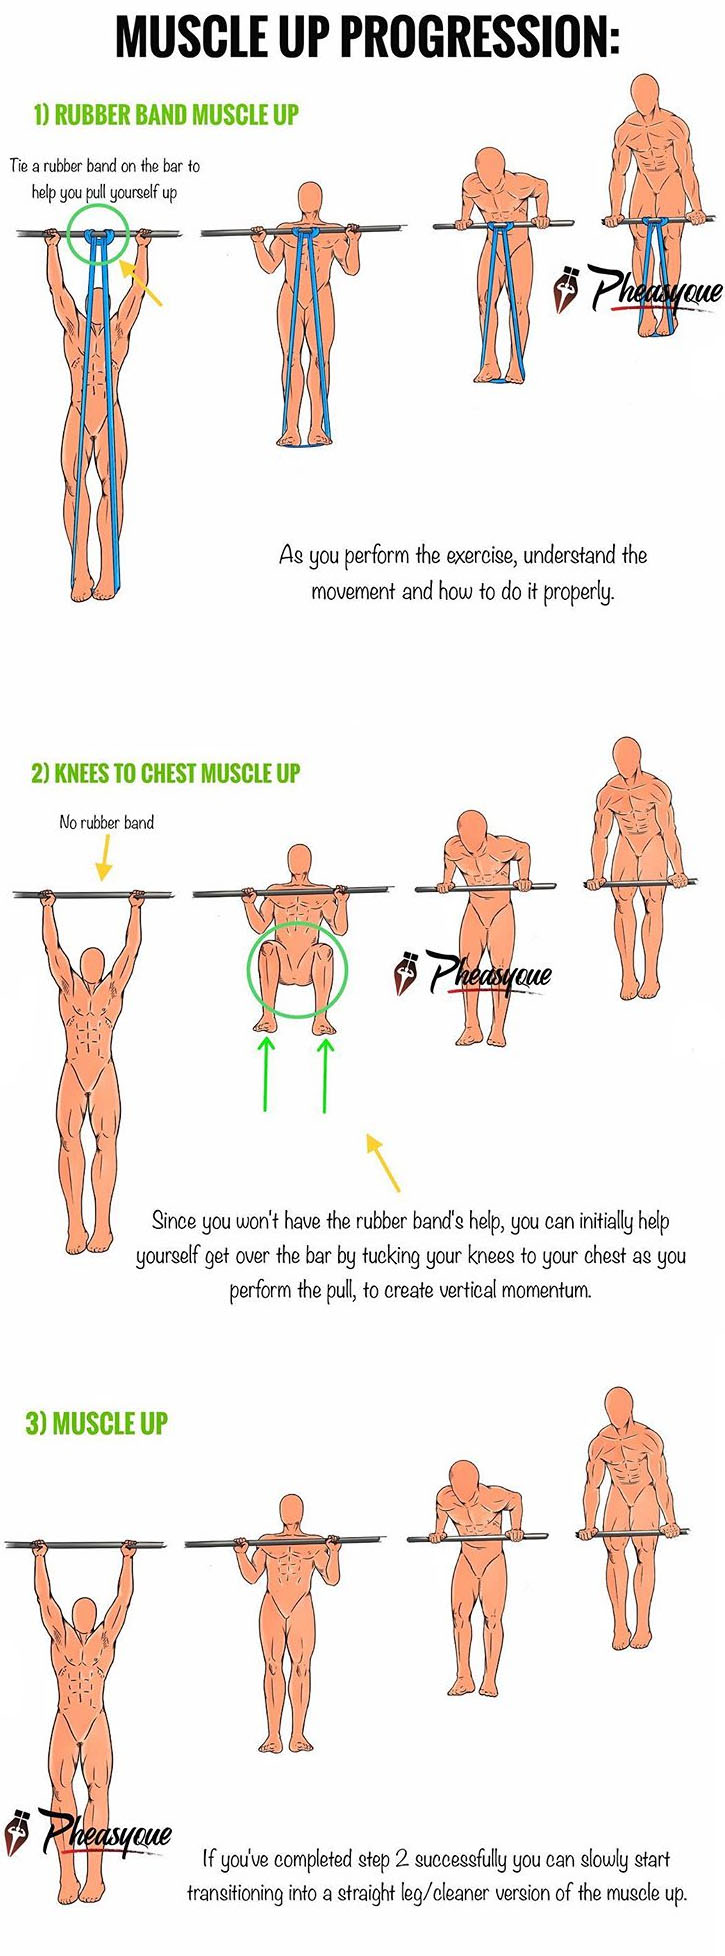 MUSCLE UP PROGRESSION FOR BEGINNERS